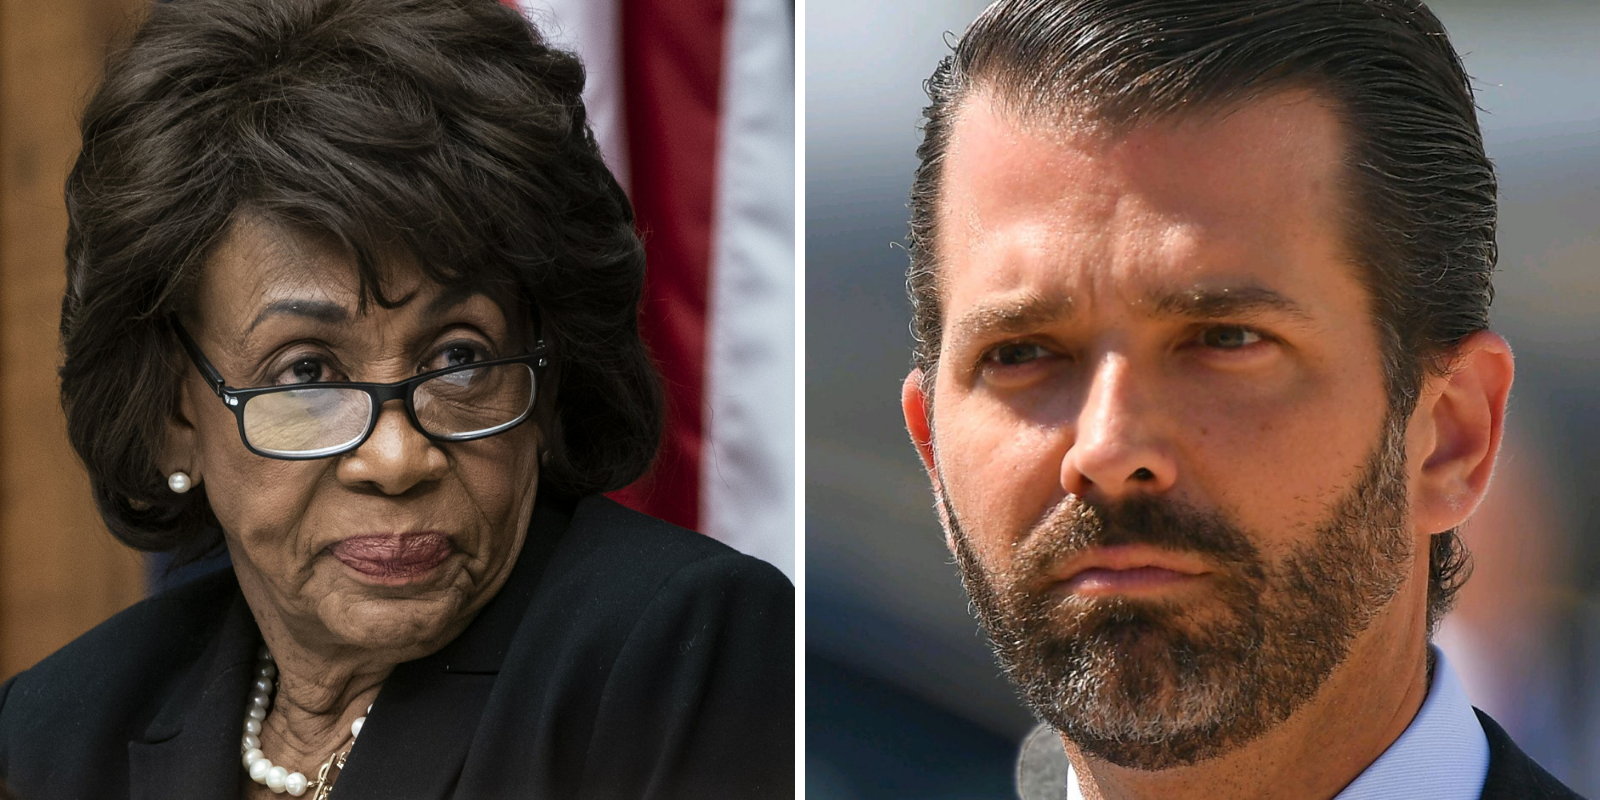 WATCH: Donald Trump Jr. slams Maxine Waters for her failure to understand how the stock market works